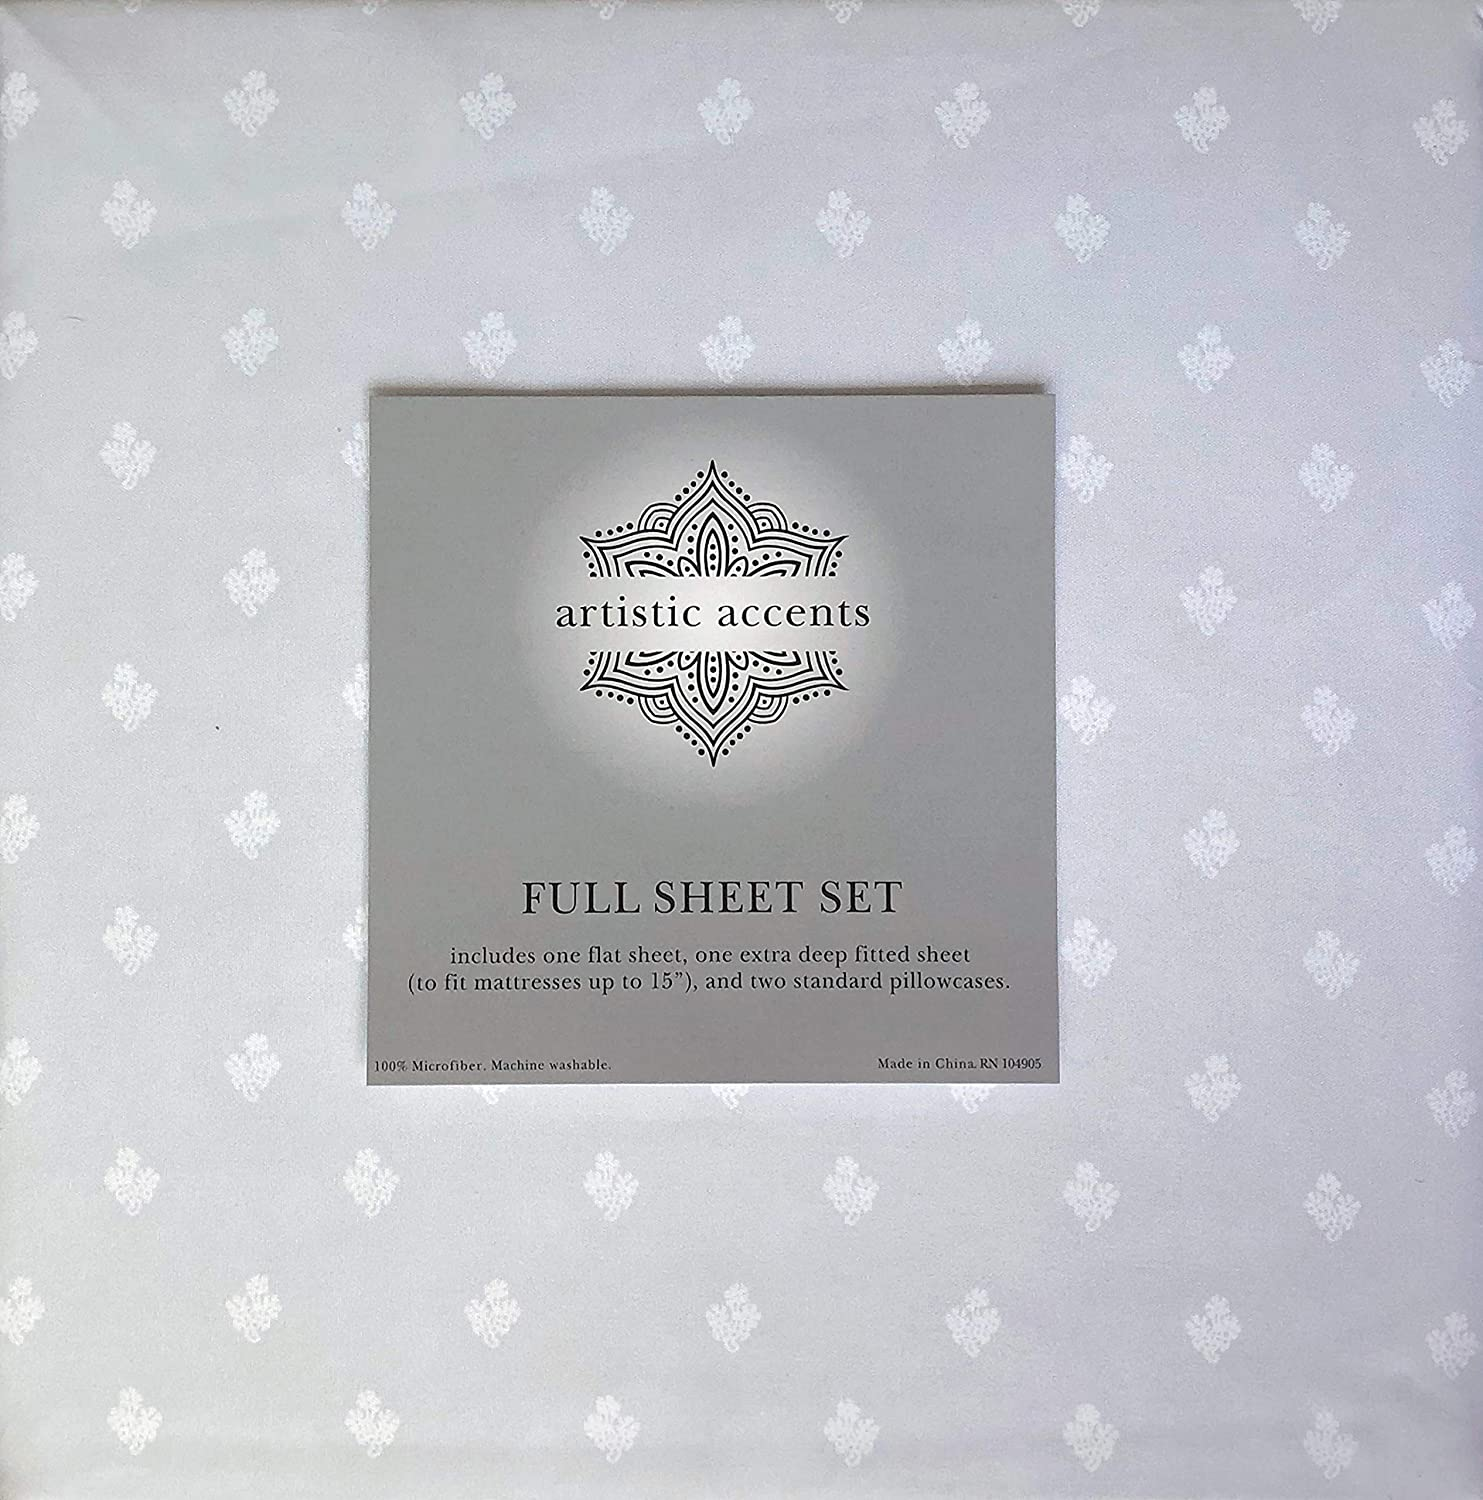 Artistic Accents 4 Piece Full Size Sheet Set Small White Floral Floating Medallions on Light Gray New Block Flower Chrome